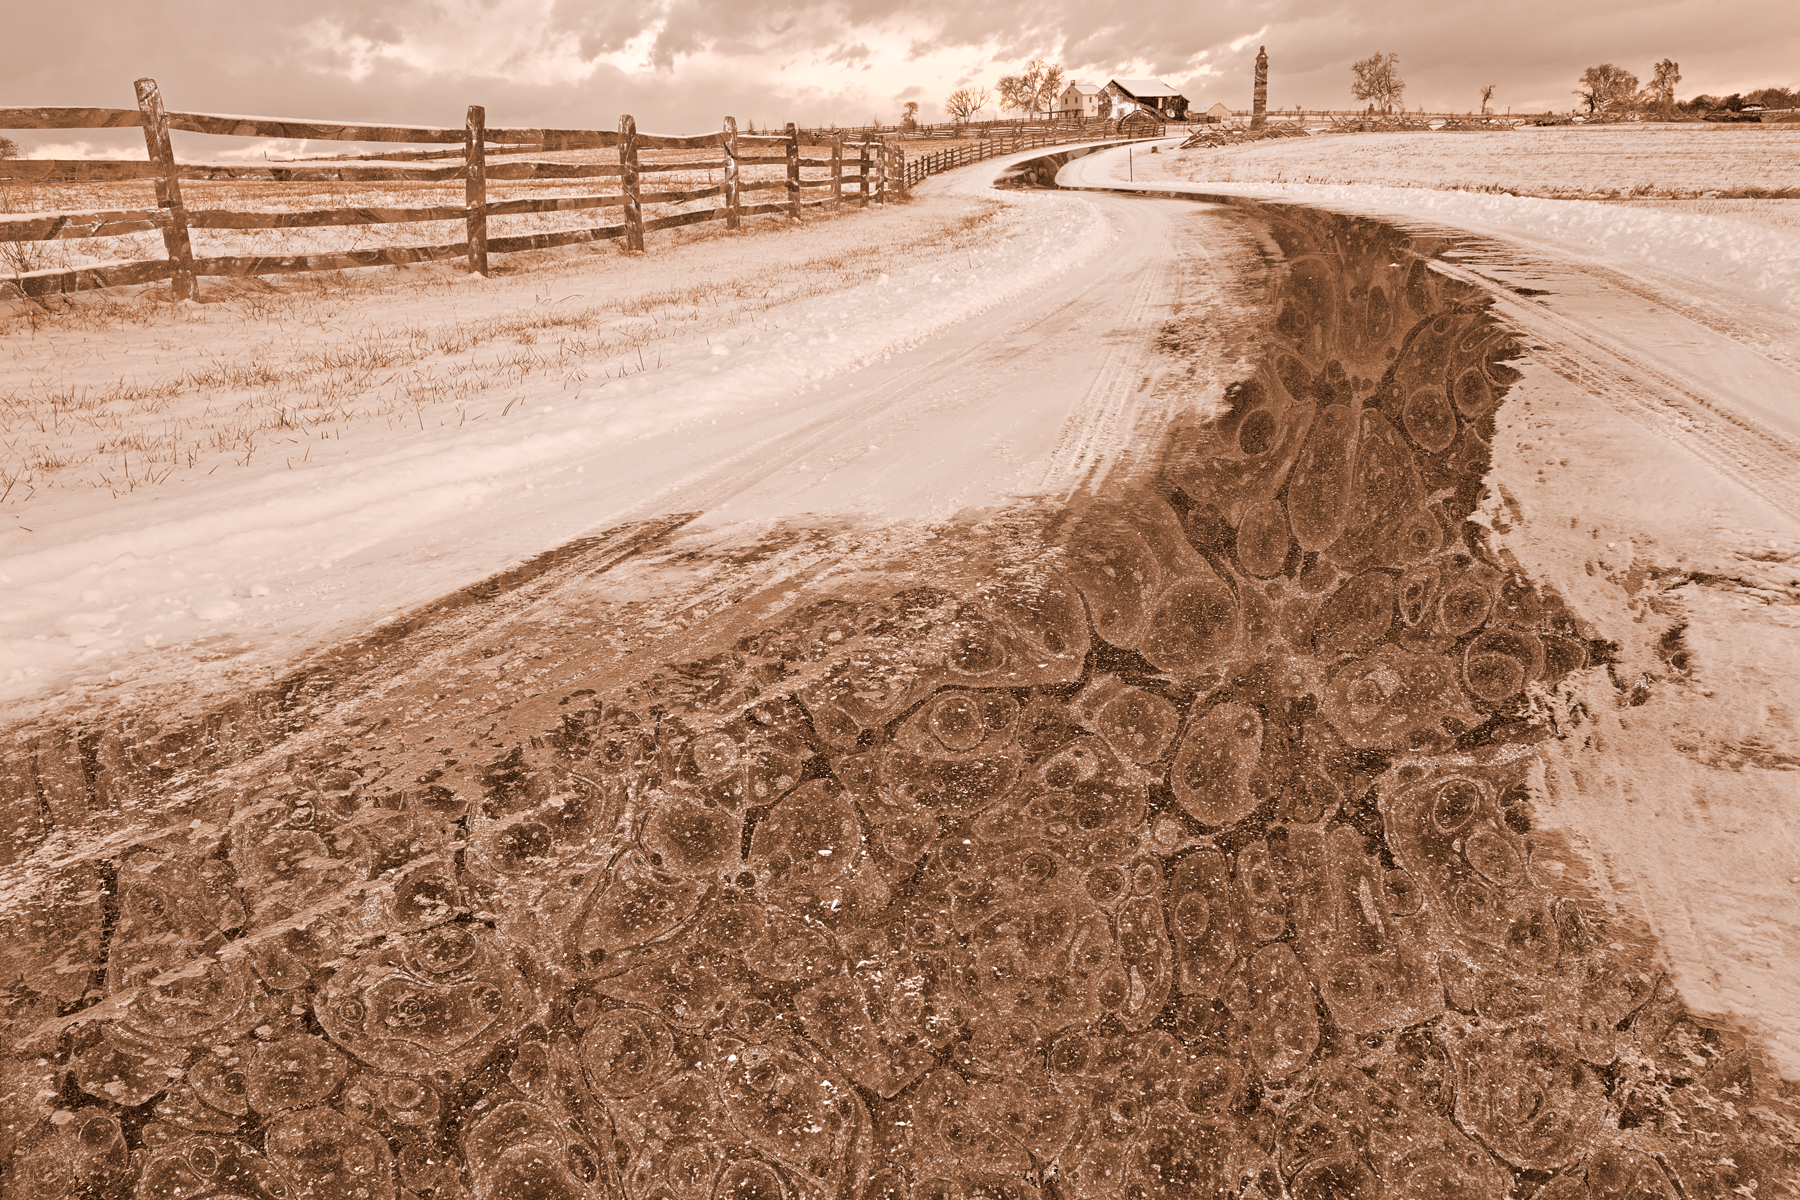 Winding Winter Road - Sepia Nostalgia, Abstract, Outdoors, Rural, Route, HQ Photo